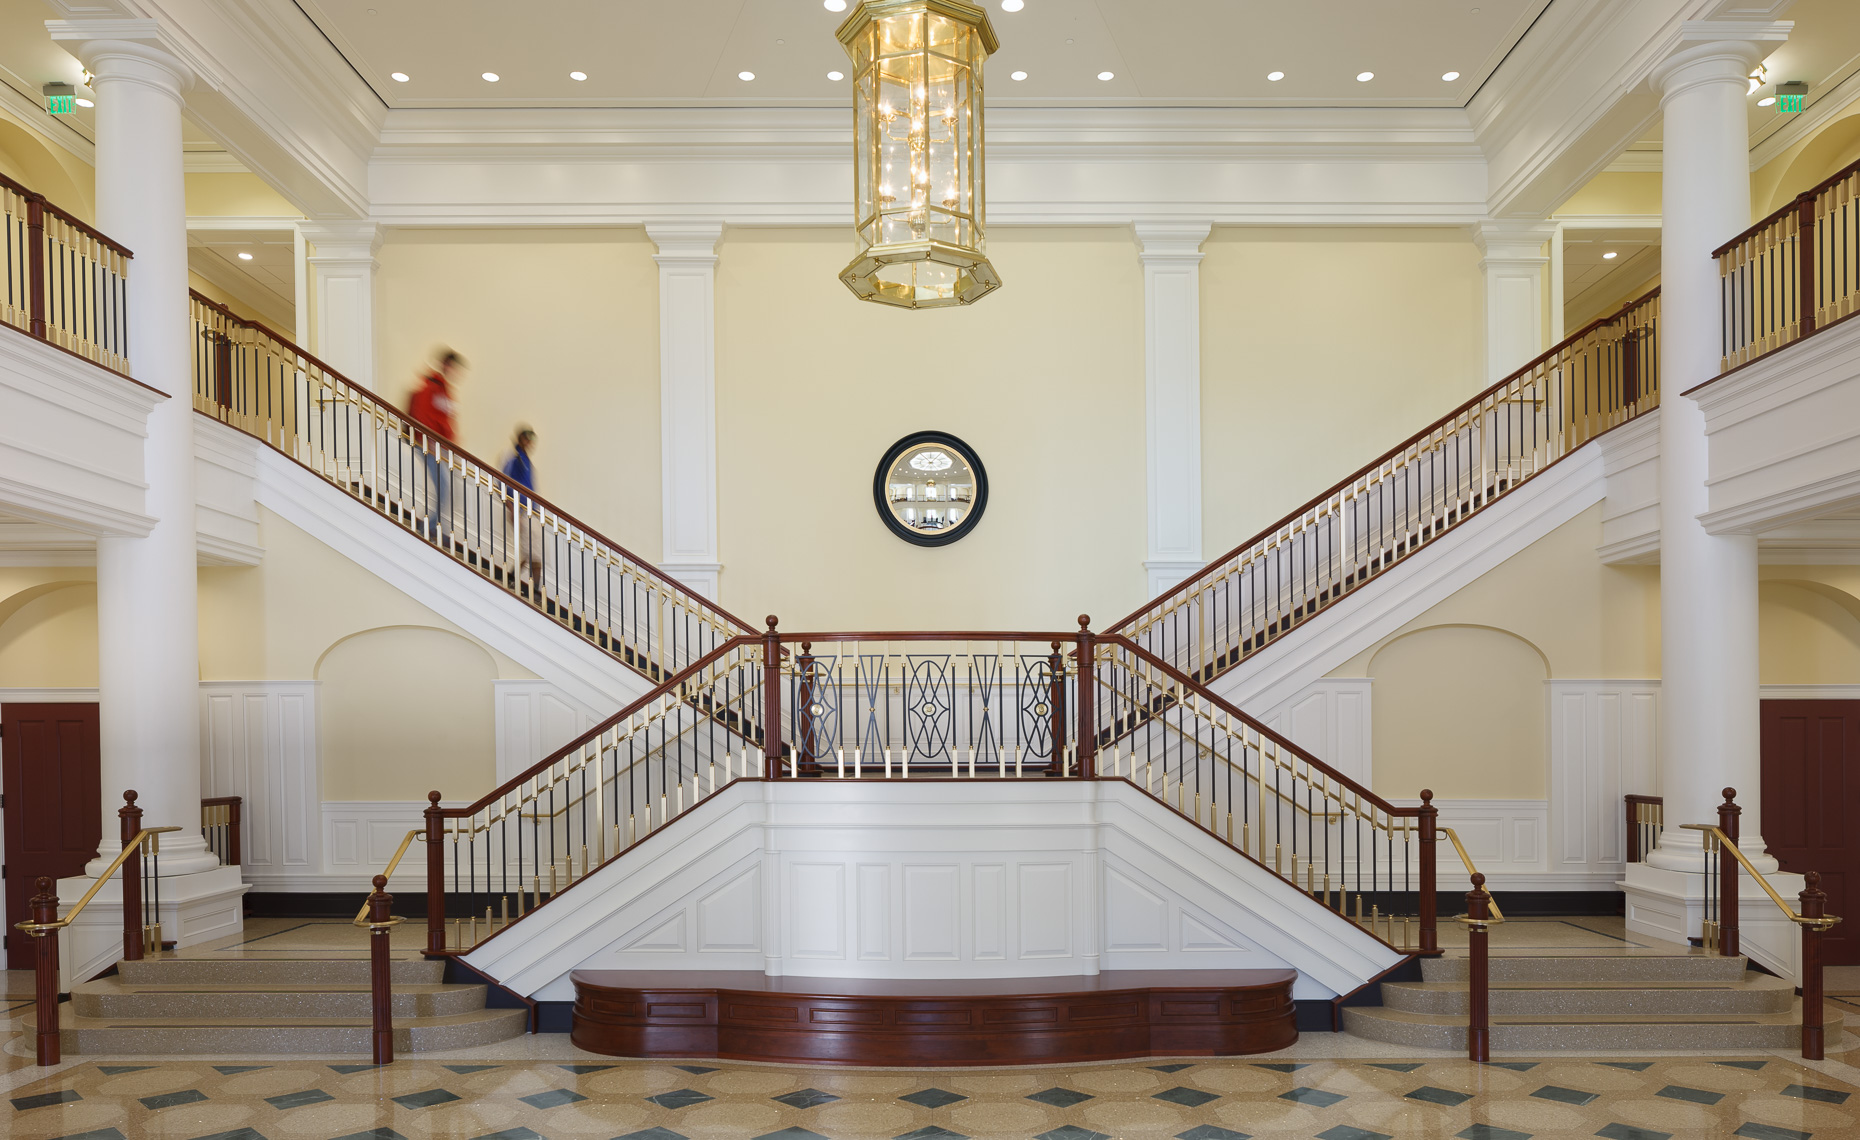 Virginia Hamrick Photography - Main Lobby Luter School of Business Christopher Newport University Newport News VA